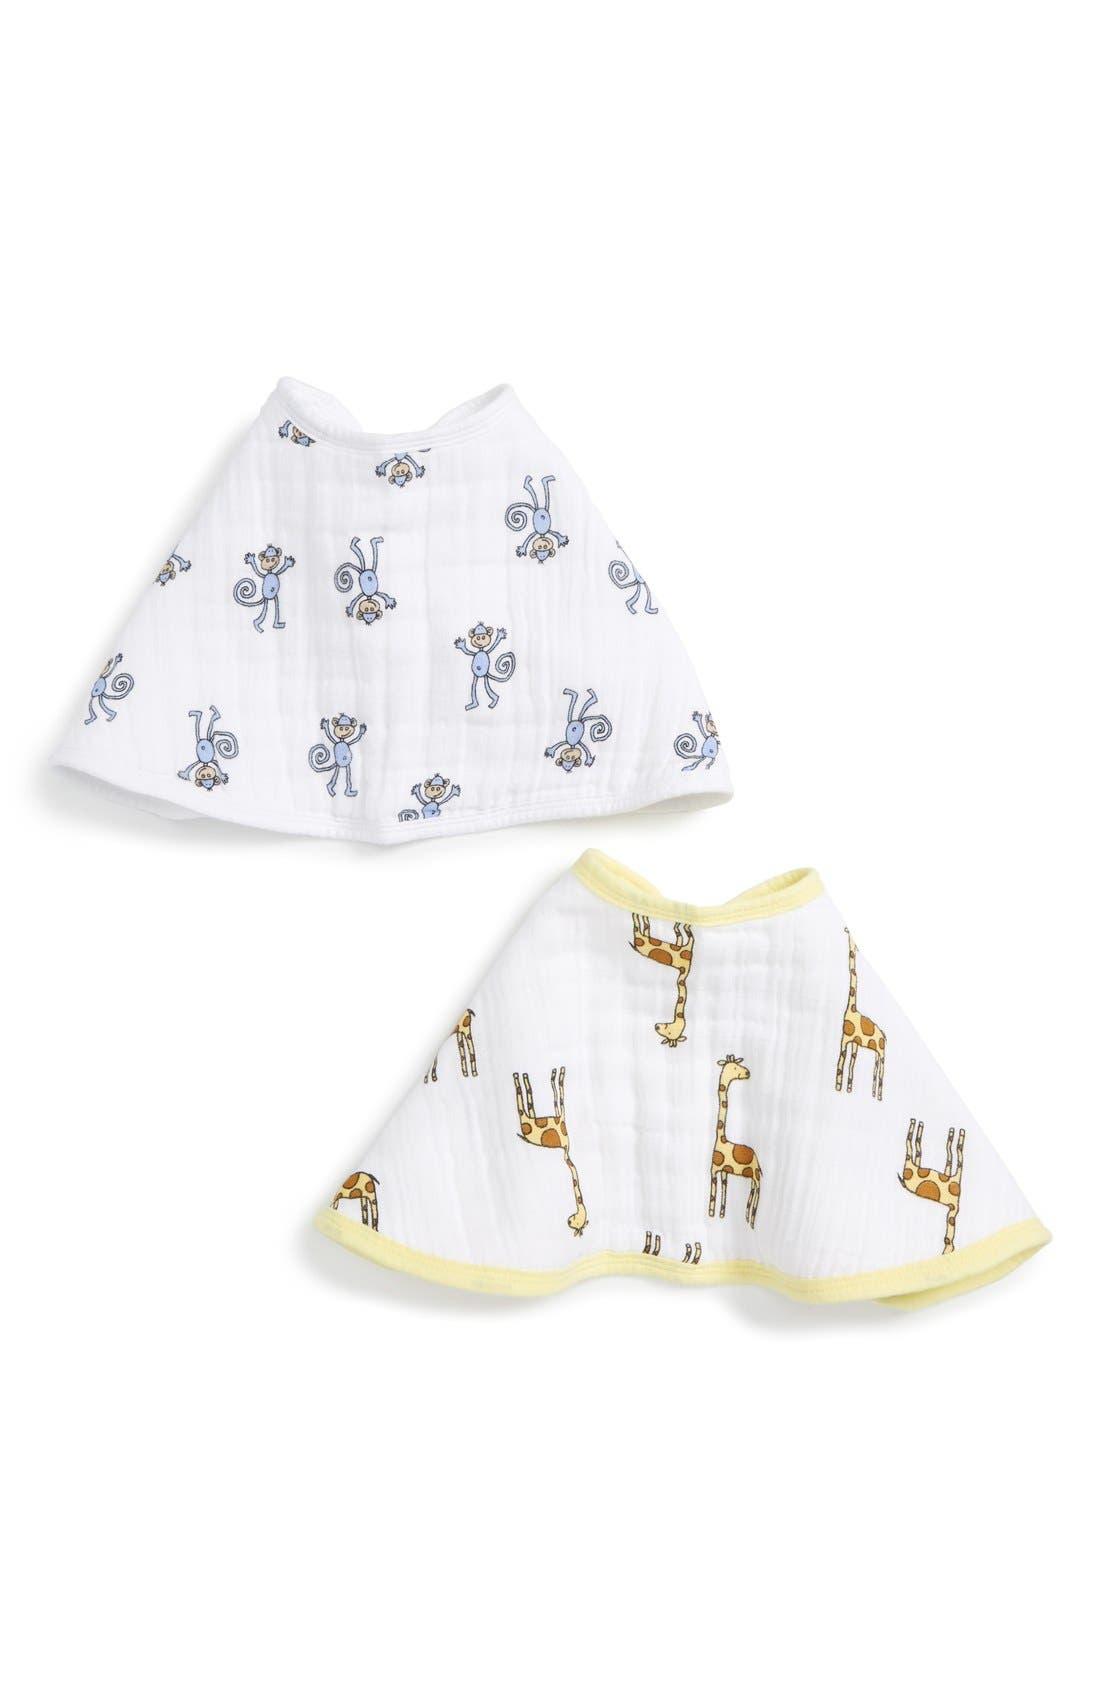 Main Image - aden + anais 2-Pack Classic Burpy Bibs